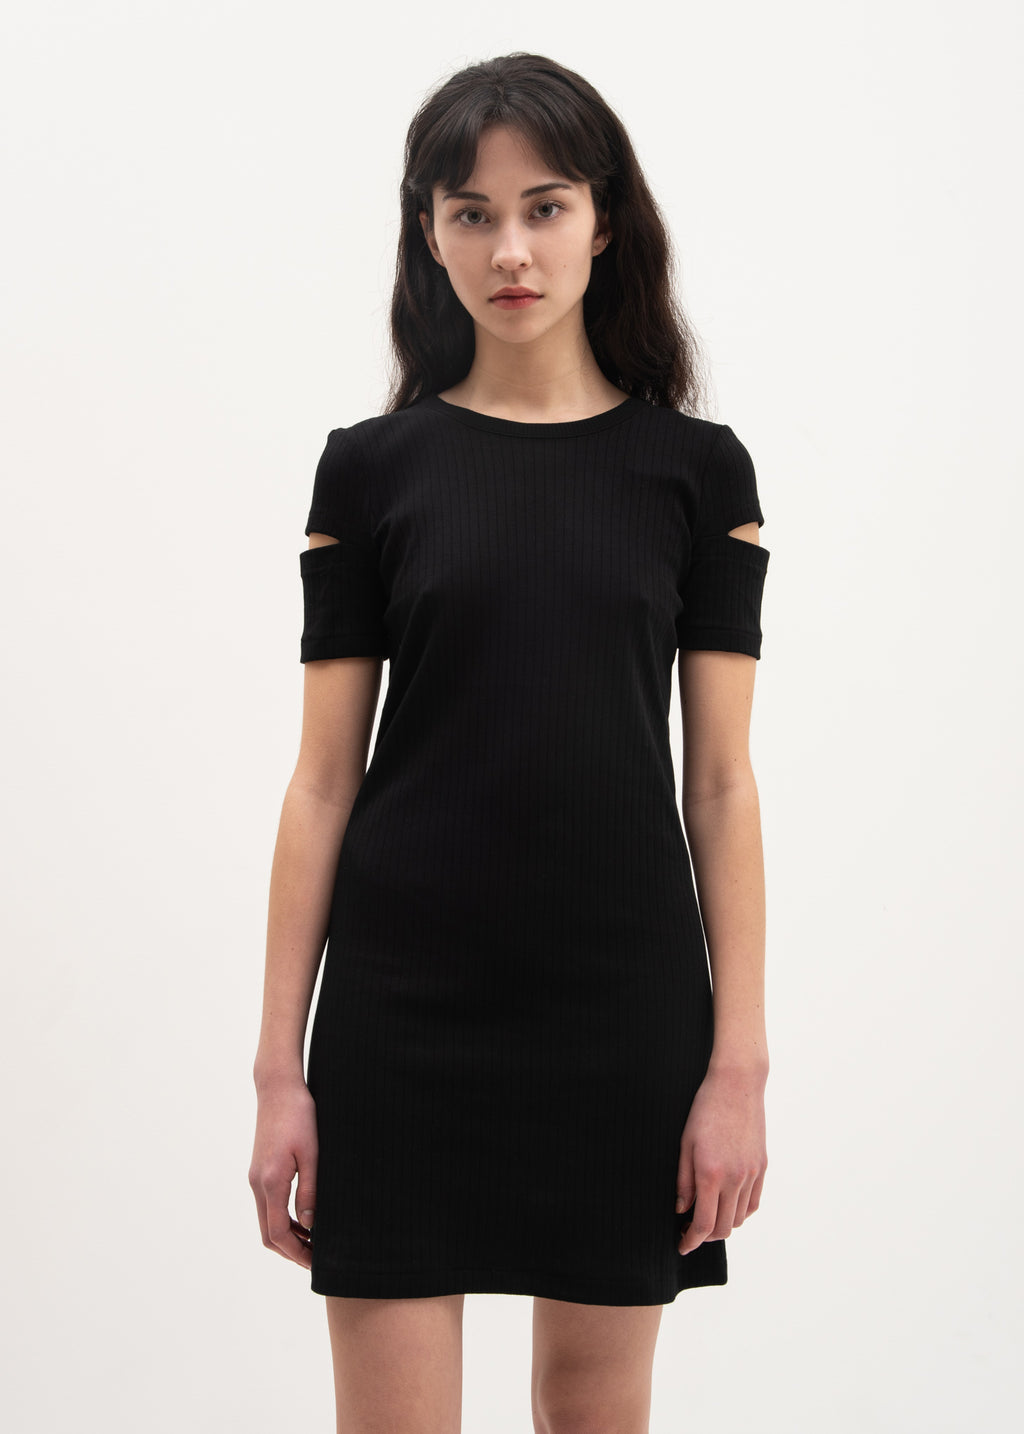 Helmut Lang, Black Ribbed Dress, 017 Shop